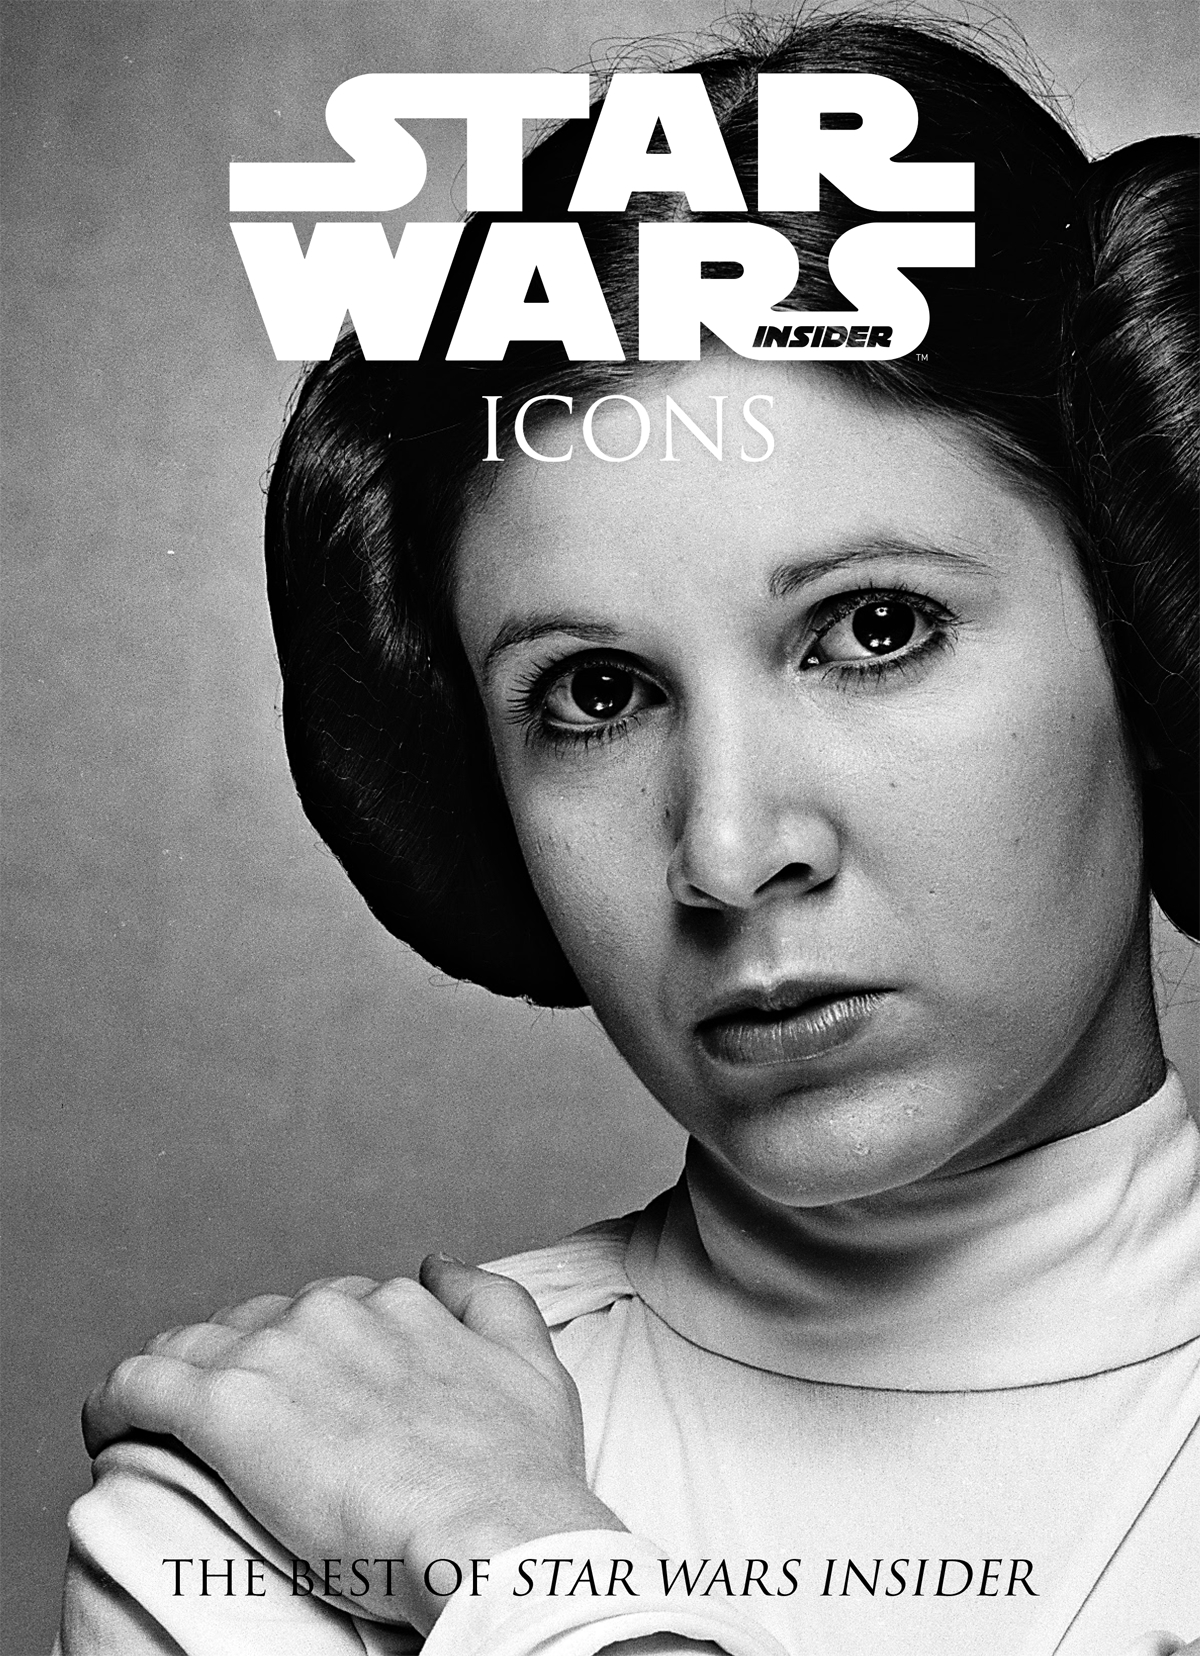 BEST OF STAR WARS INSIDER VOL 07 ICONS